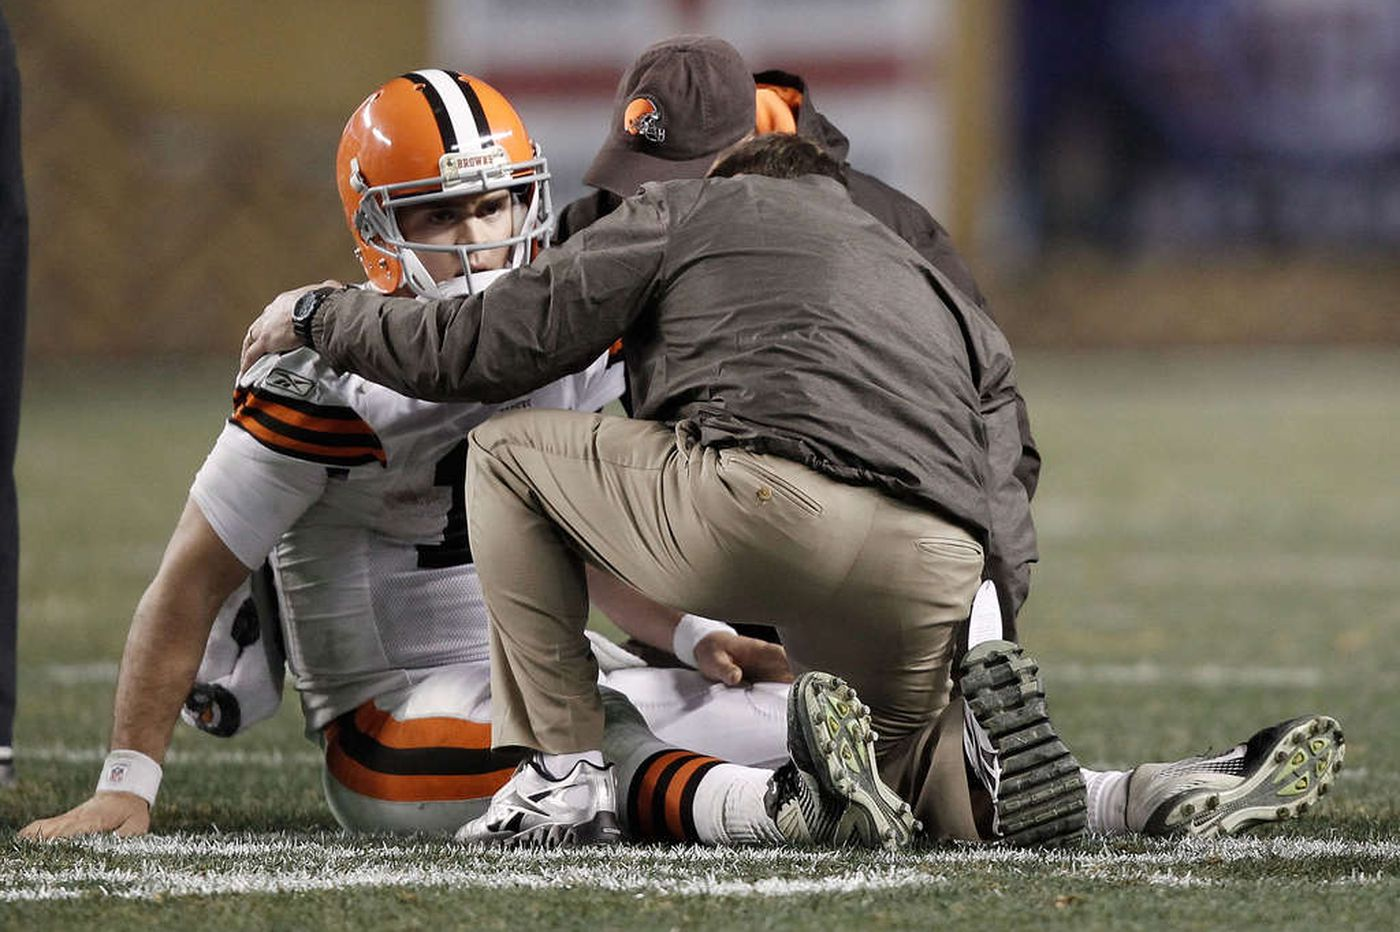 McCoy's father blasts Browns on treatment